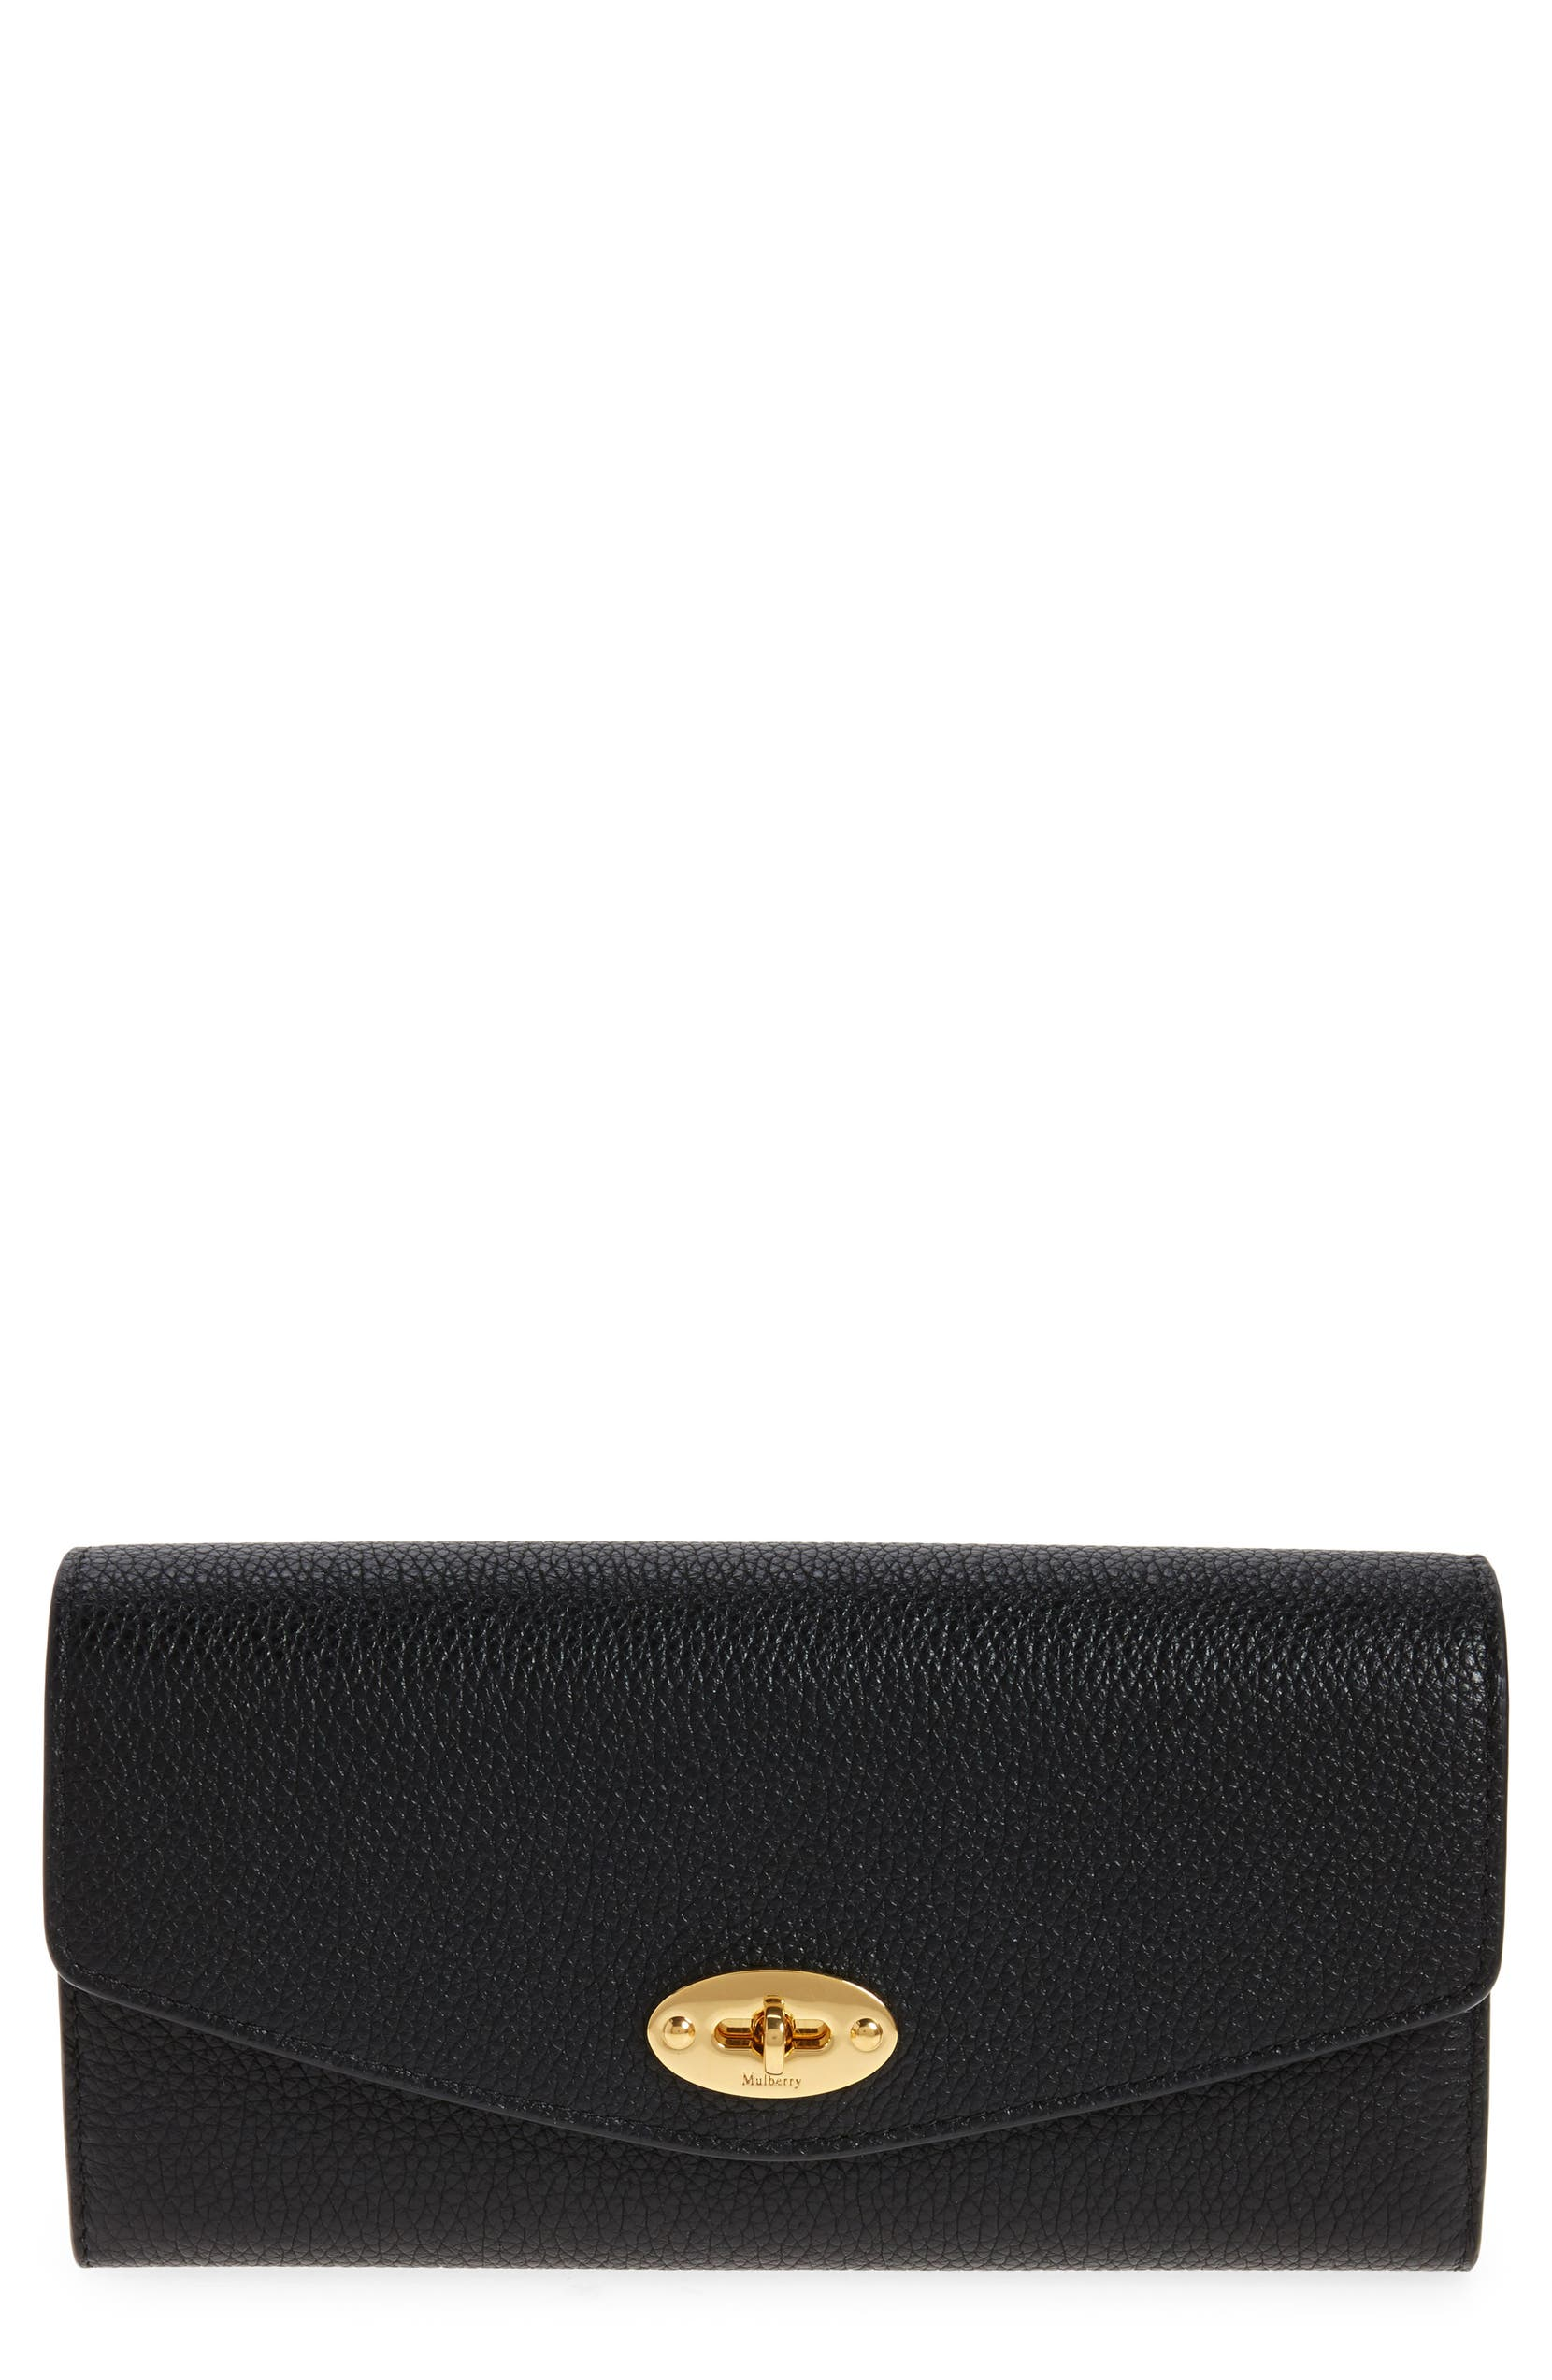 Mulberry Darley Continental Leather Wallet   Nordstrom 2fc690c445